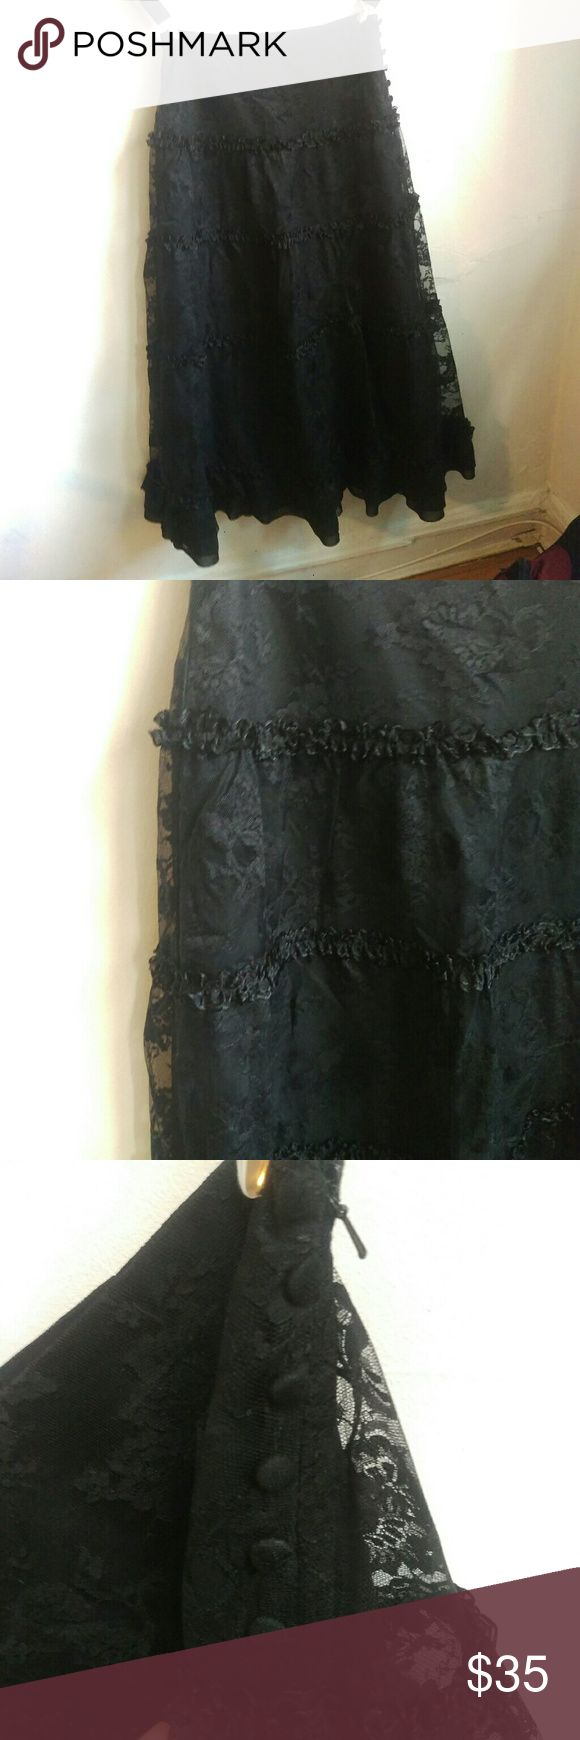 Black lace maxi skirt Black lace and ruffle maxi skirt. Has a hidden zipper on the side with decorative buttons. There's a snag and a couple small holes (pictured) that are not super noticeable when wearing  **10% off on bundles. All offers on single items considered** Goth punk emo scene gothic romantic sweet lolita vintage retro 80s 90s lace overlay kawaii rocker deathrock Express Skirts Maxi